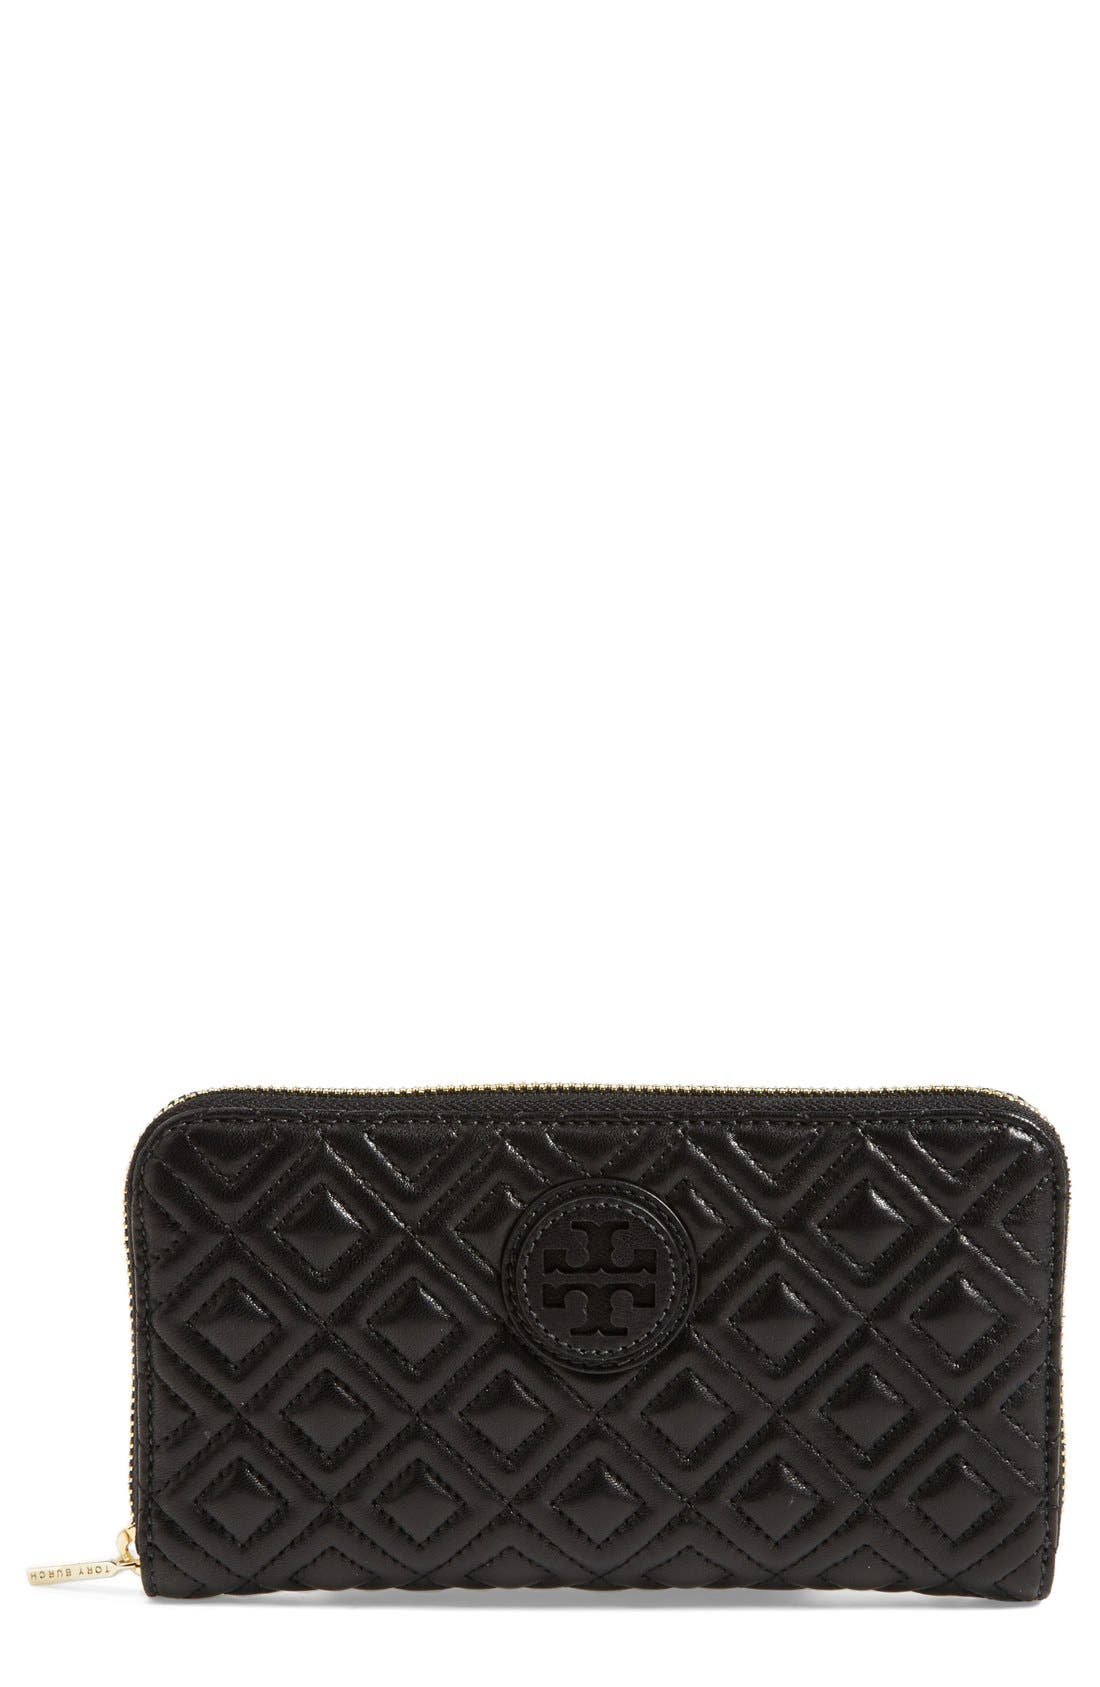 TORY BURCH 'Marion' Quilted Wallet, Main, color, 001